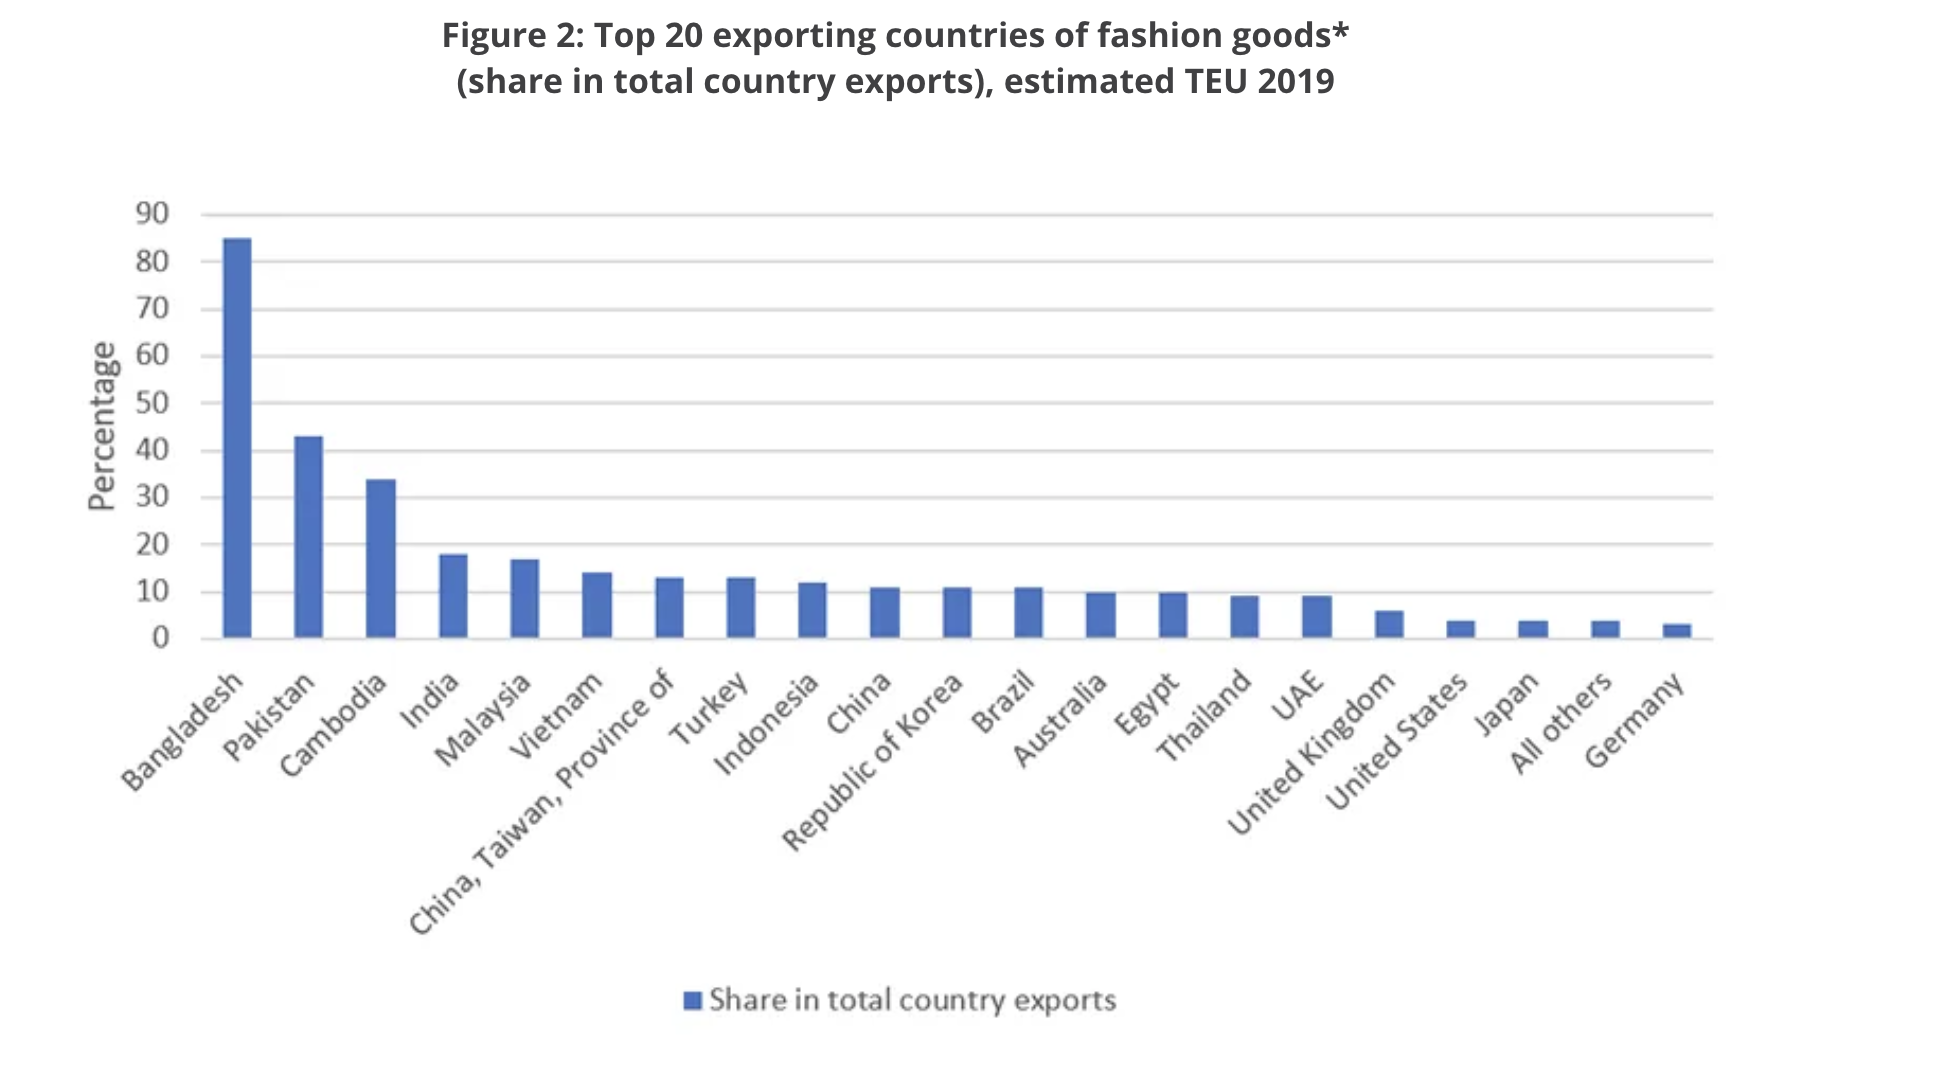 The top-20 exporting countries of textiles and clothing